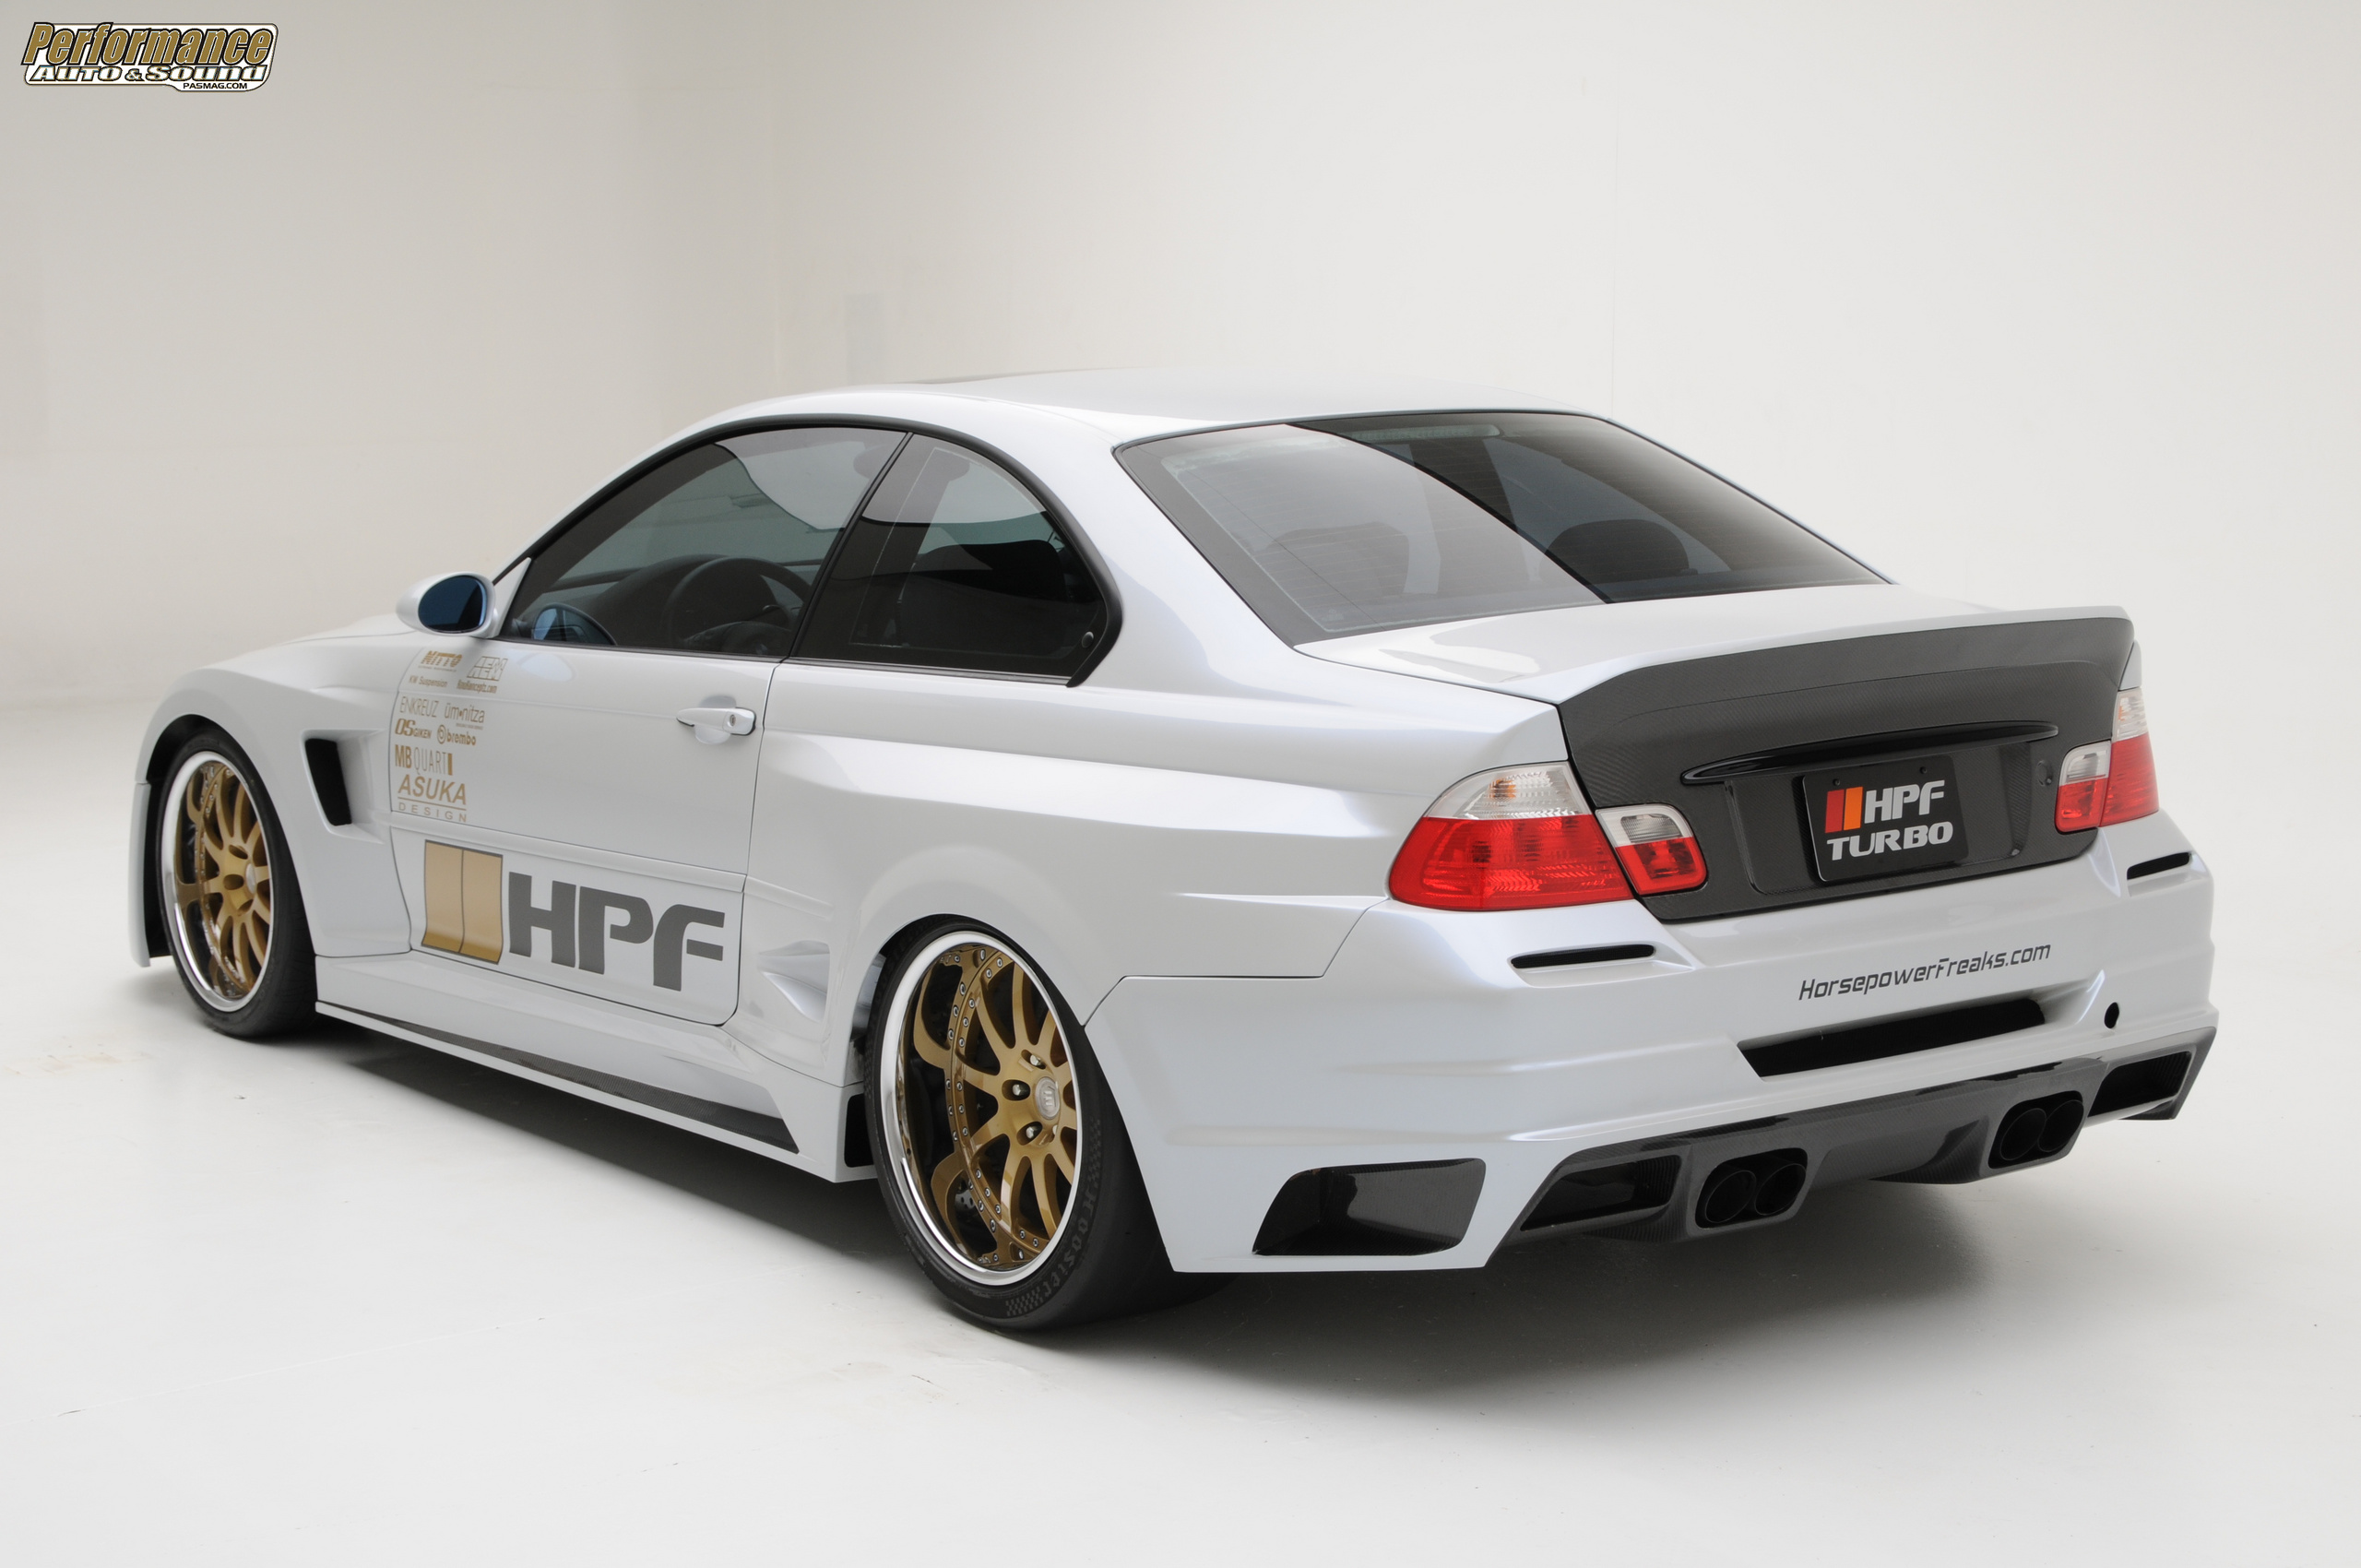 BMW BMW E46 M3 TURBO BY HPF